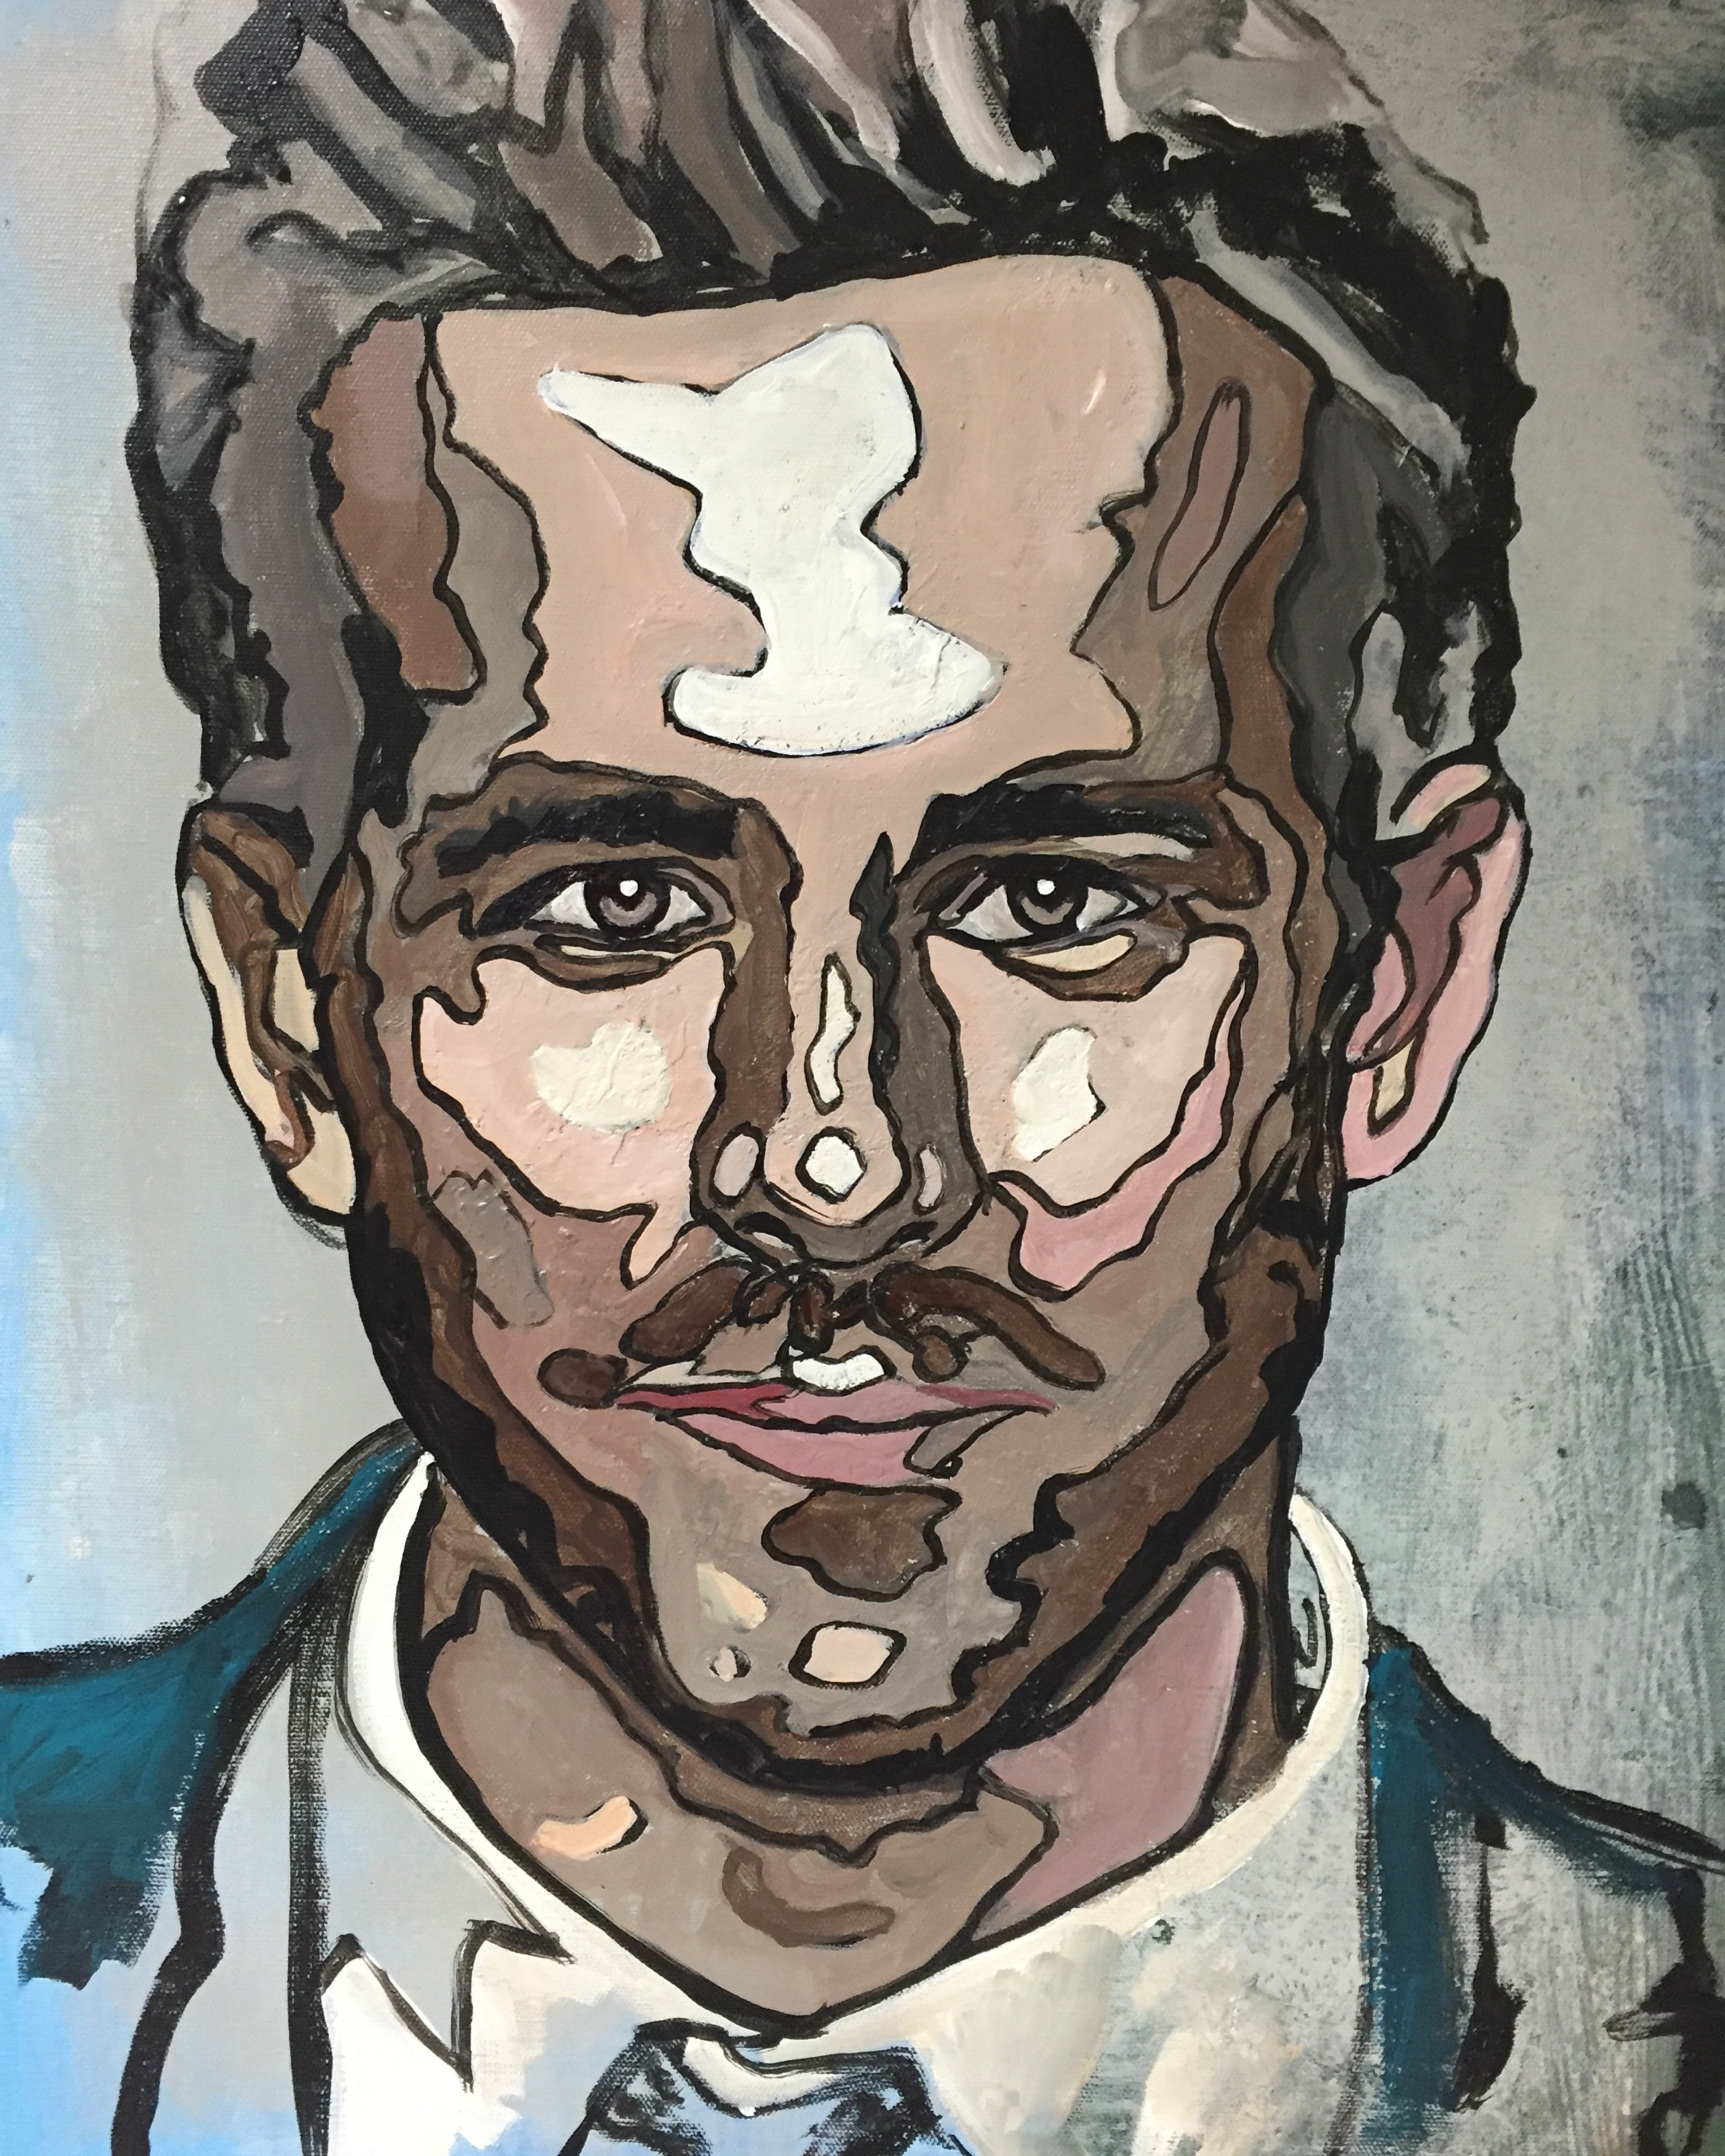 James Ruddle: Ryan Reynolds